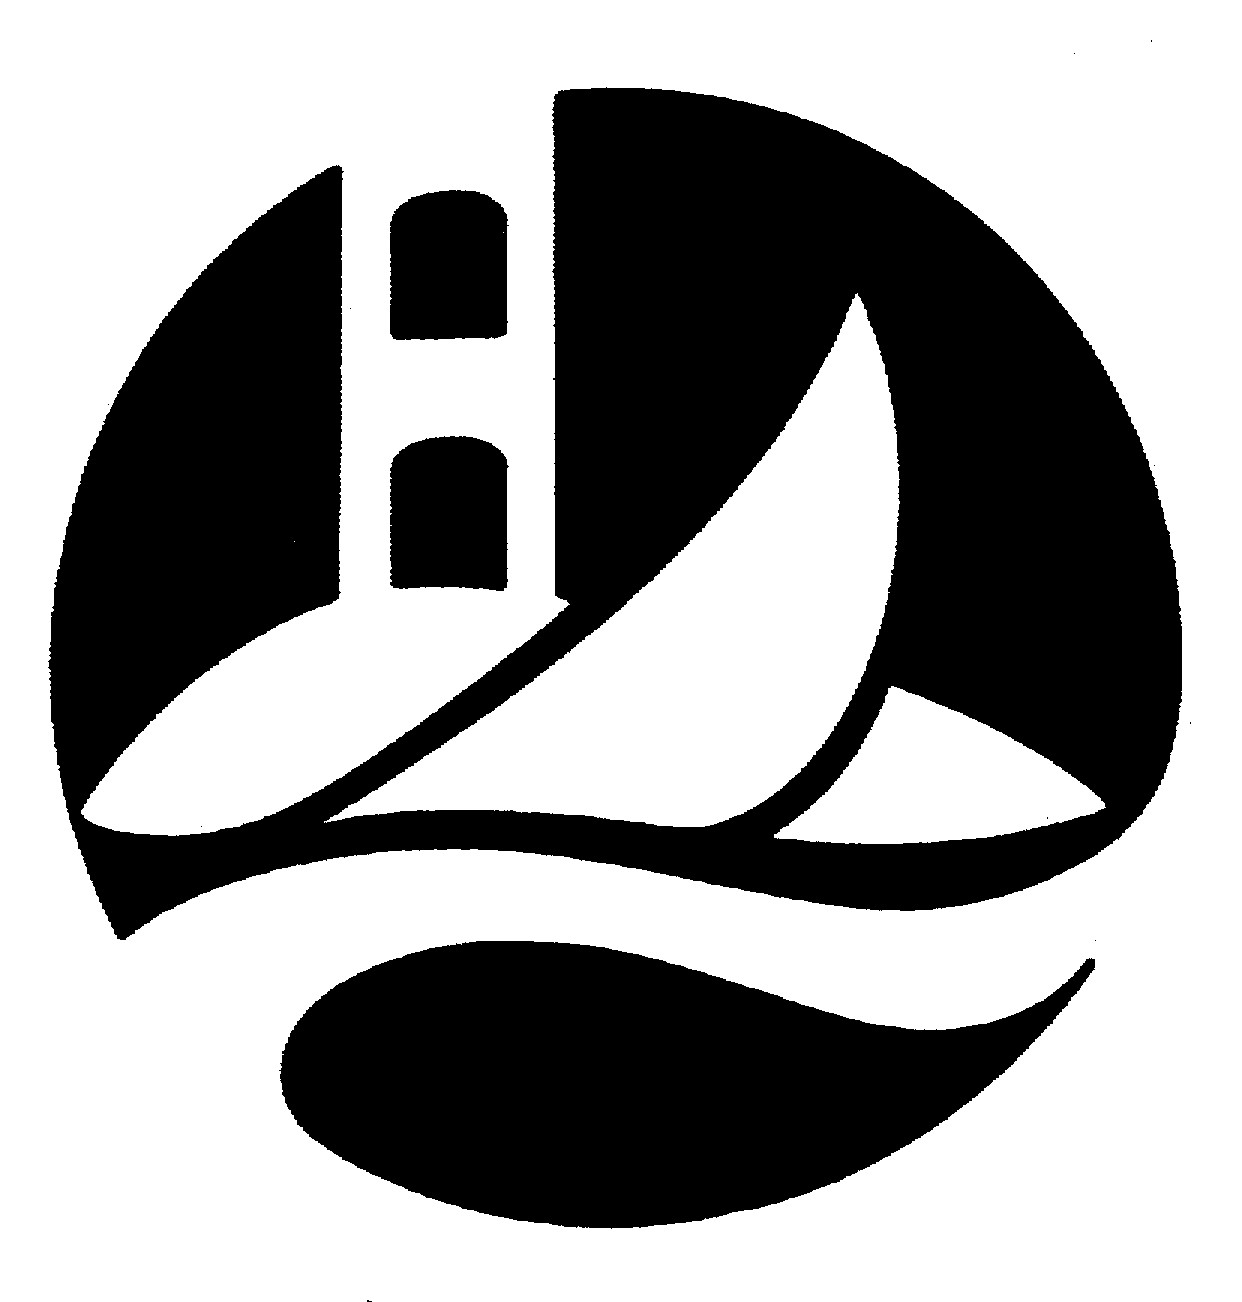 City of Belvedere logo